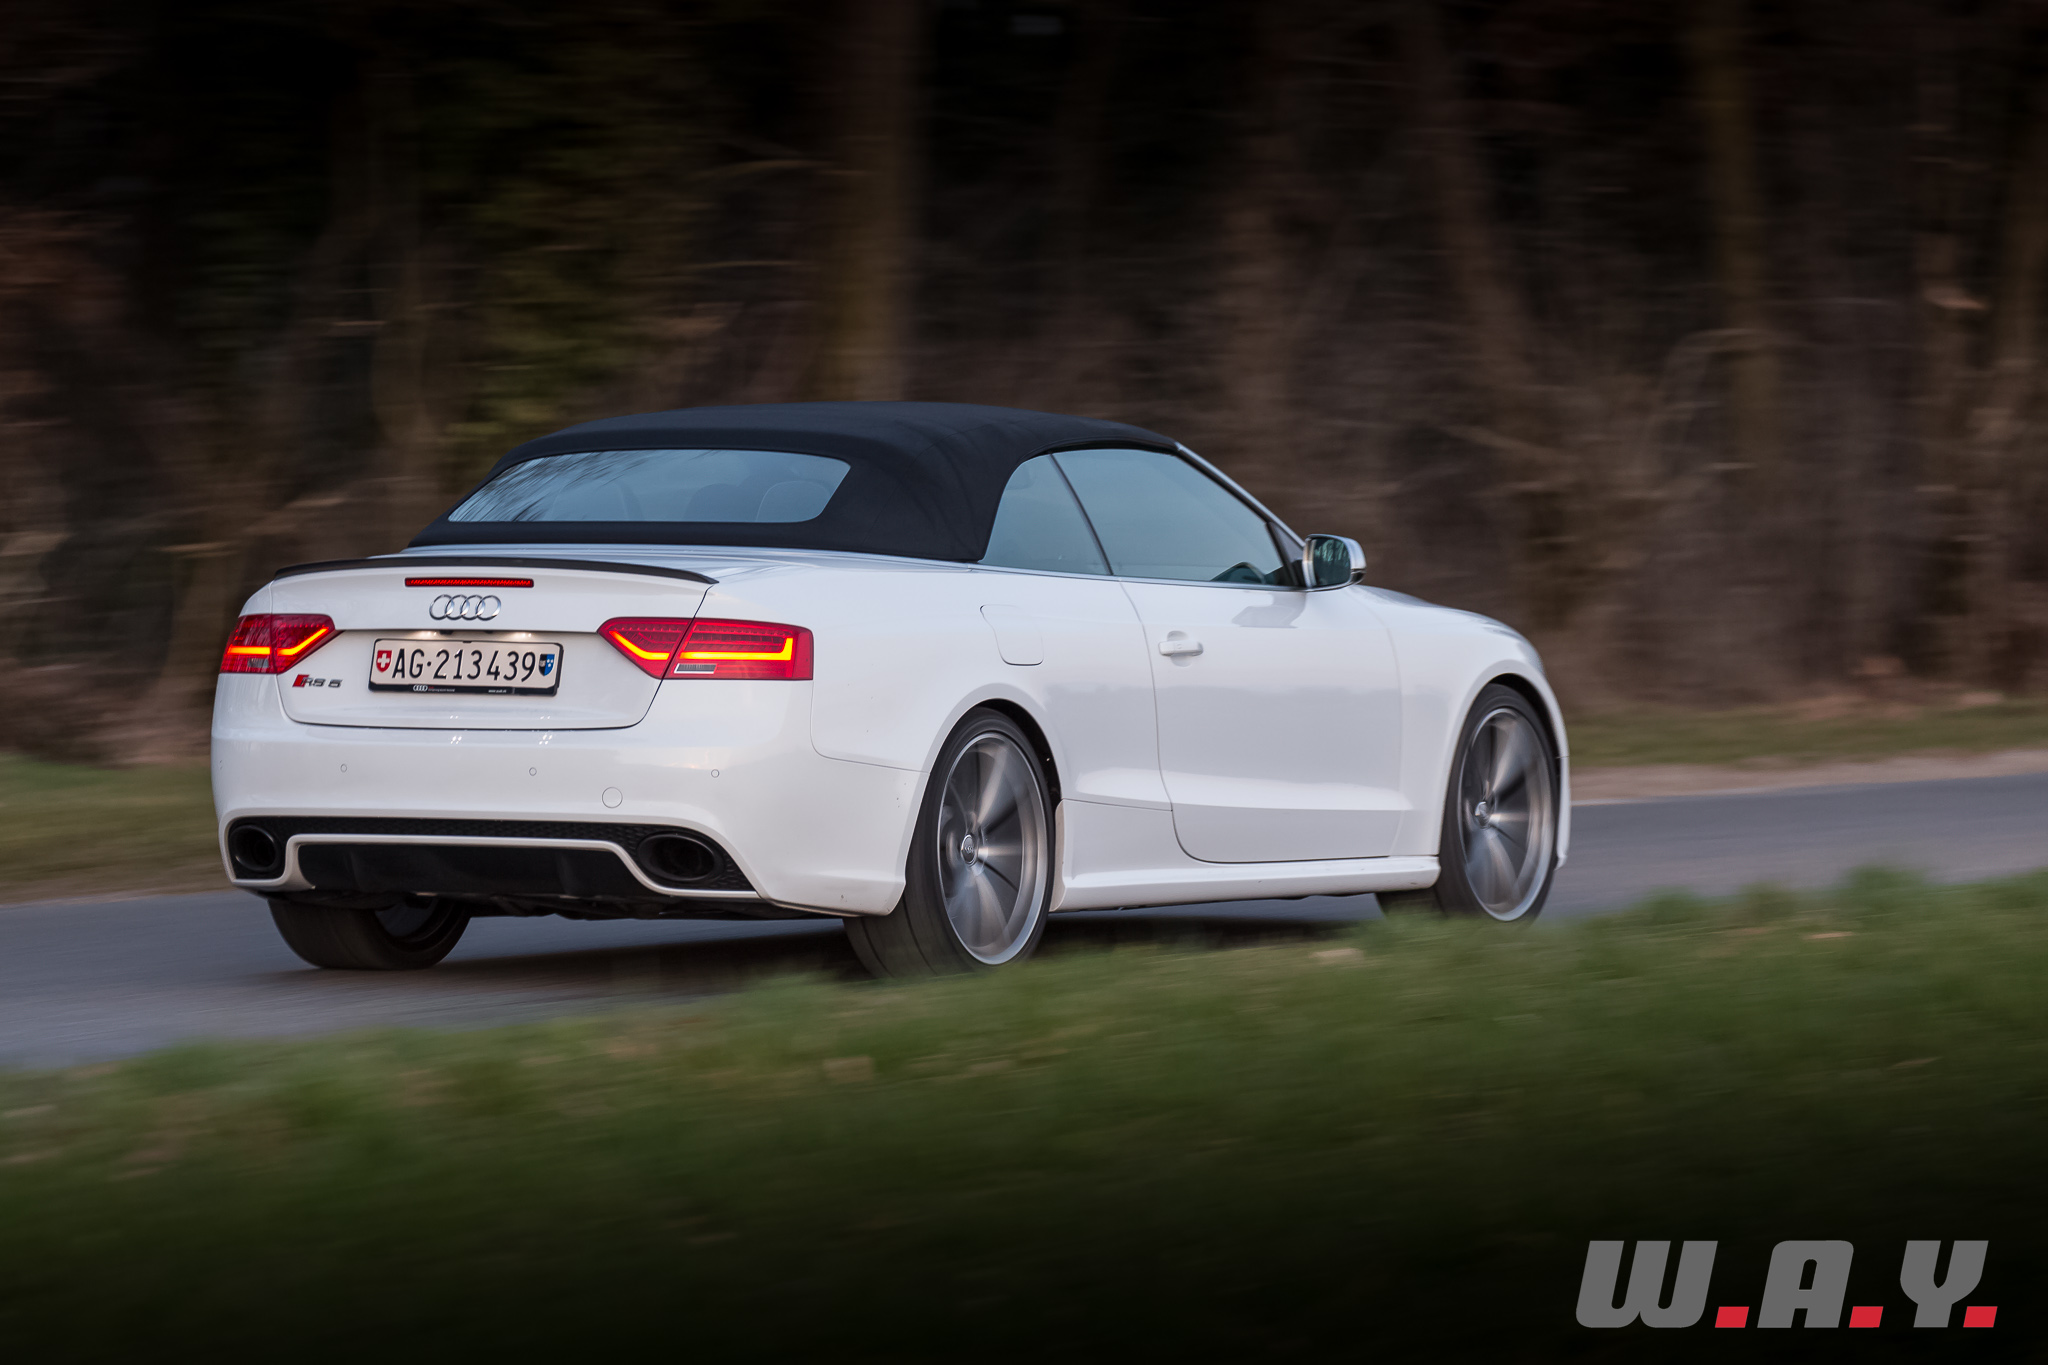 AudiRS5Cabriolet-23